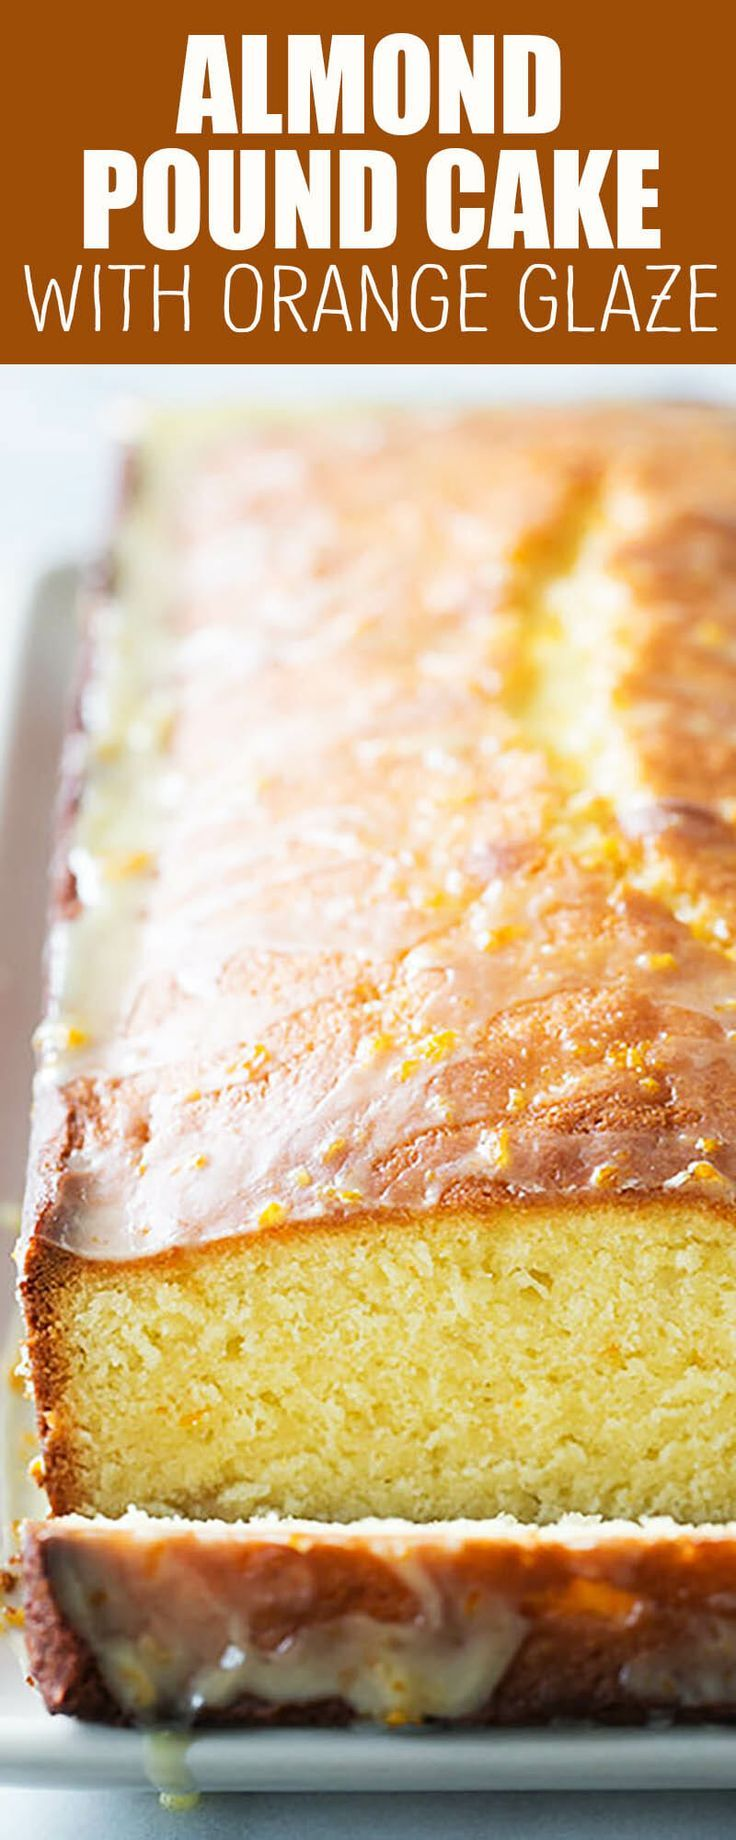 Almond Pound Cake | Posted By: DebbieNet.com